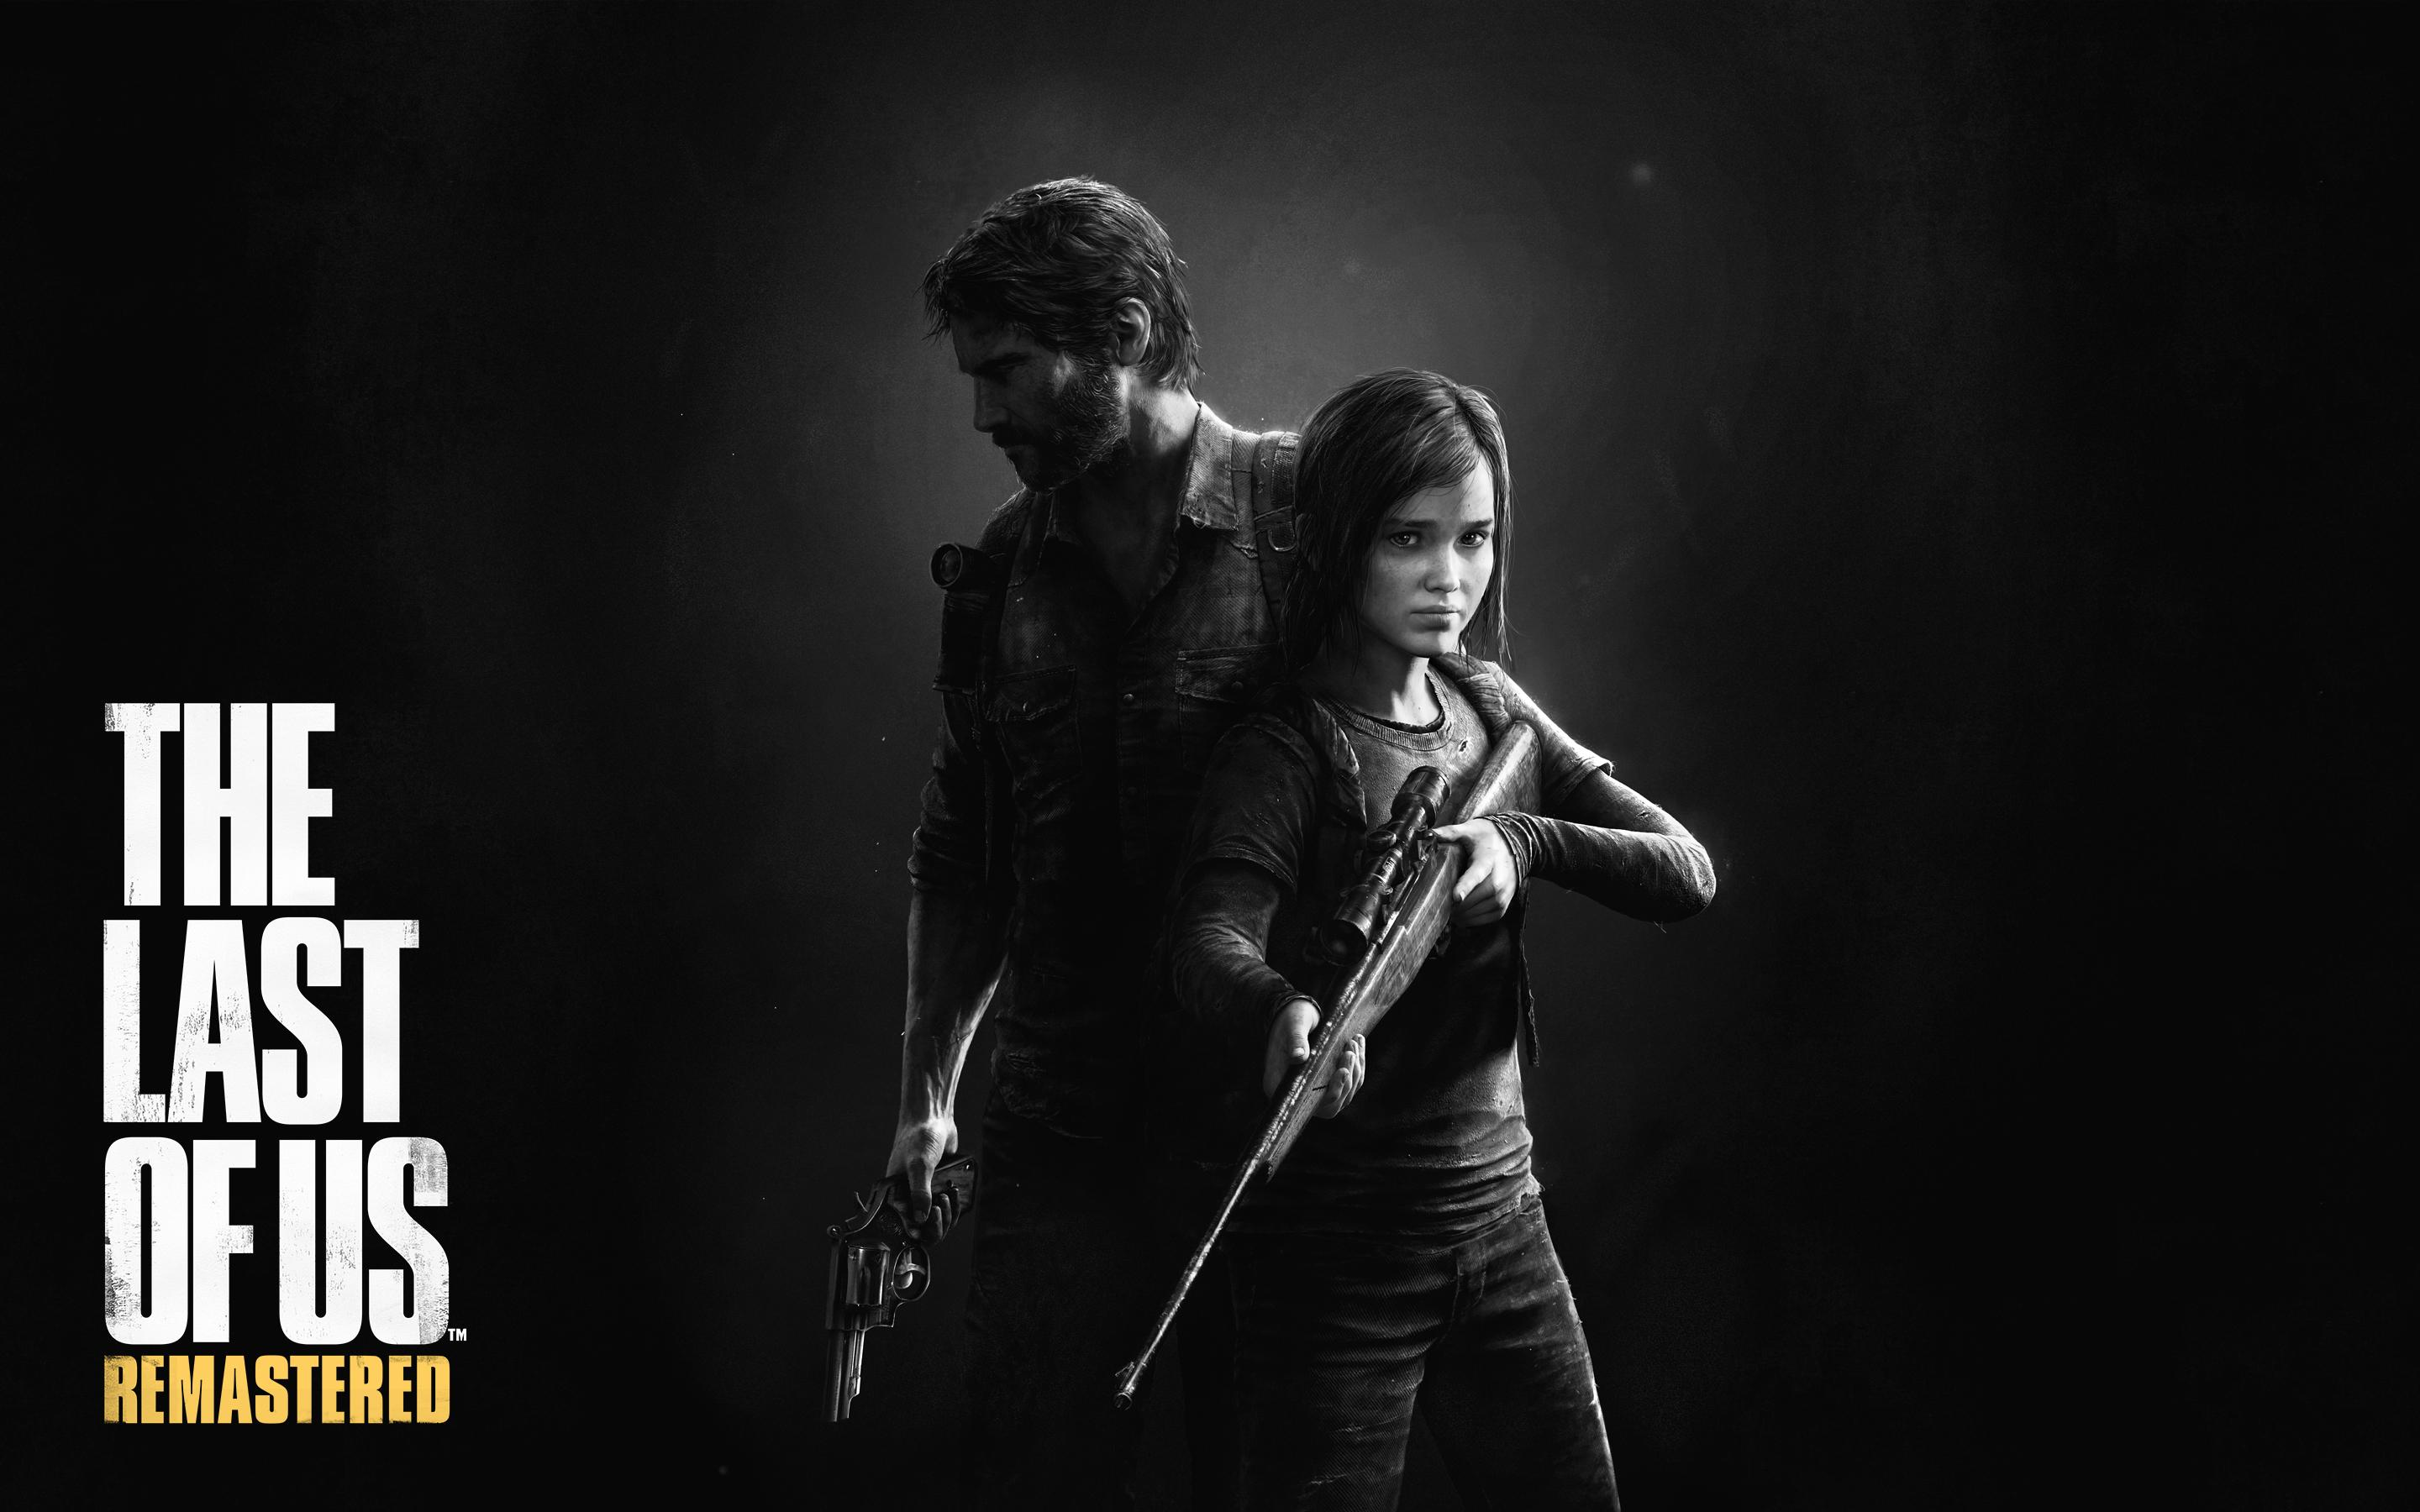 The Last of Us Remastered Grounded Difficulty preview